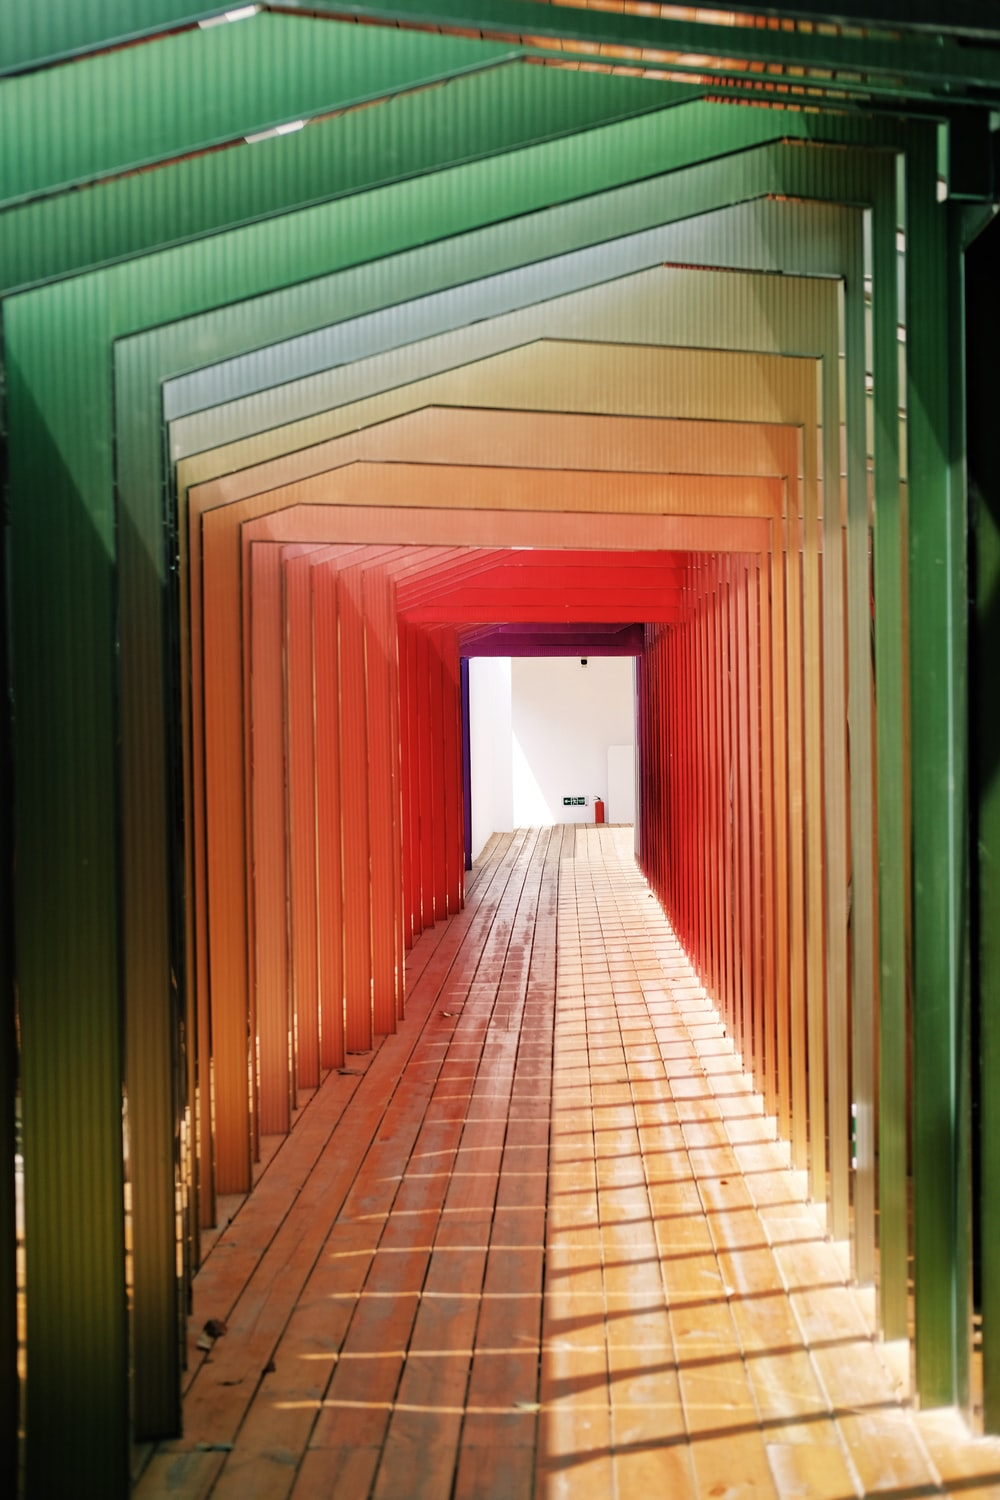 green and red wooden hallway interior